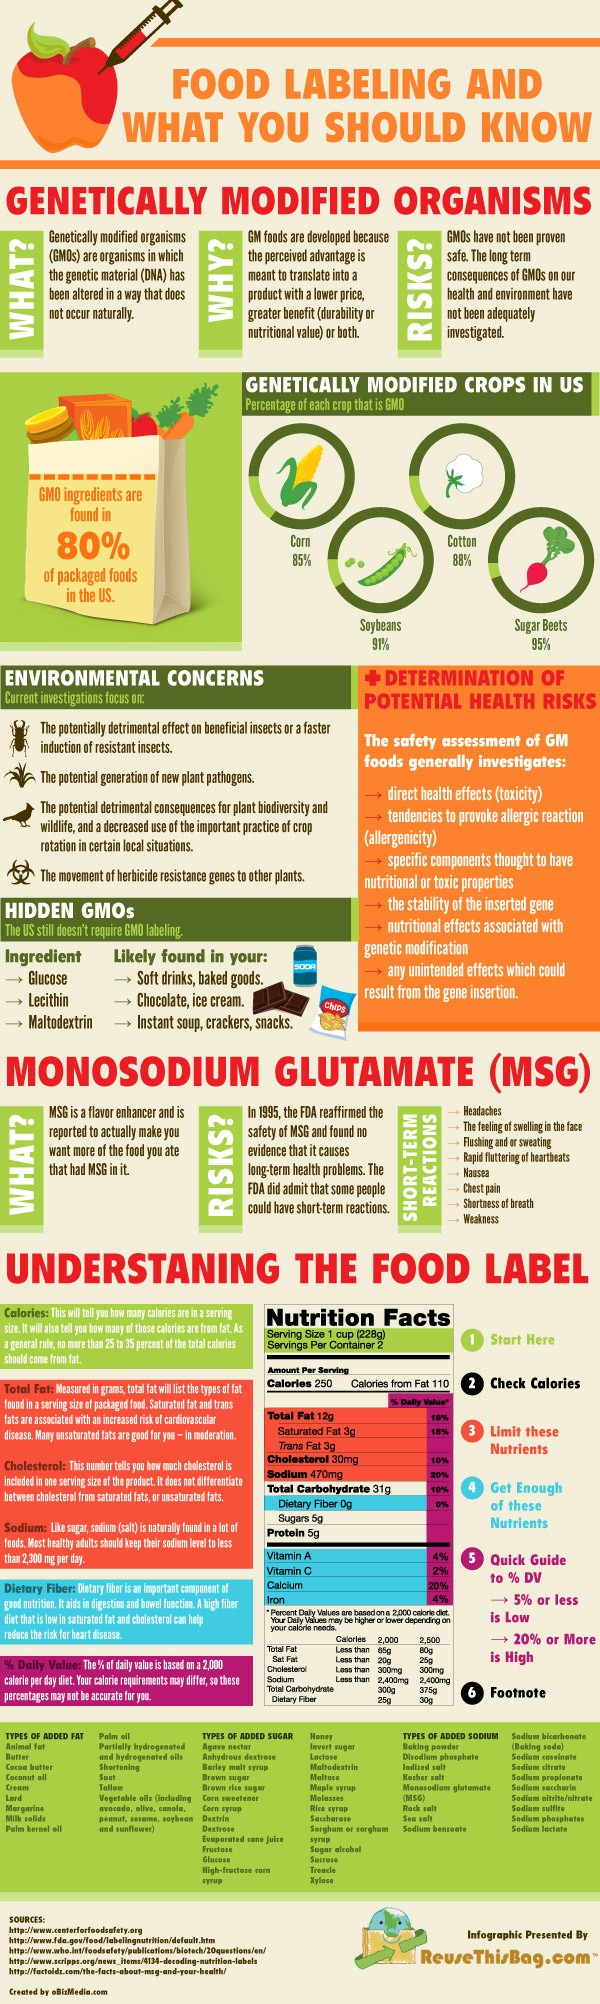 Food Labeling - What Everyone Should Know